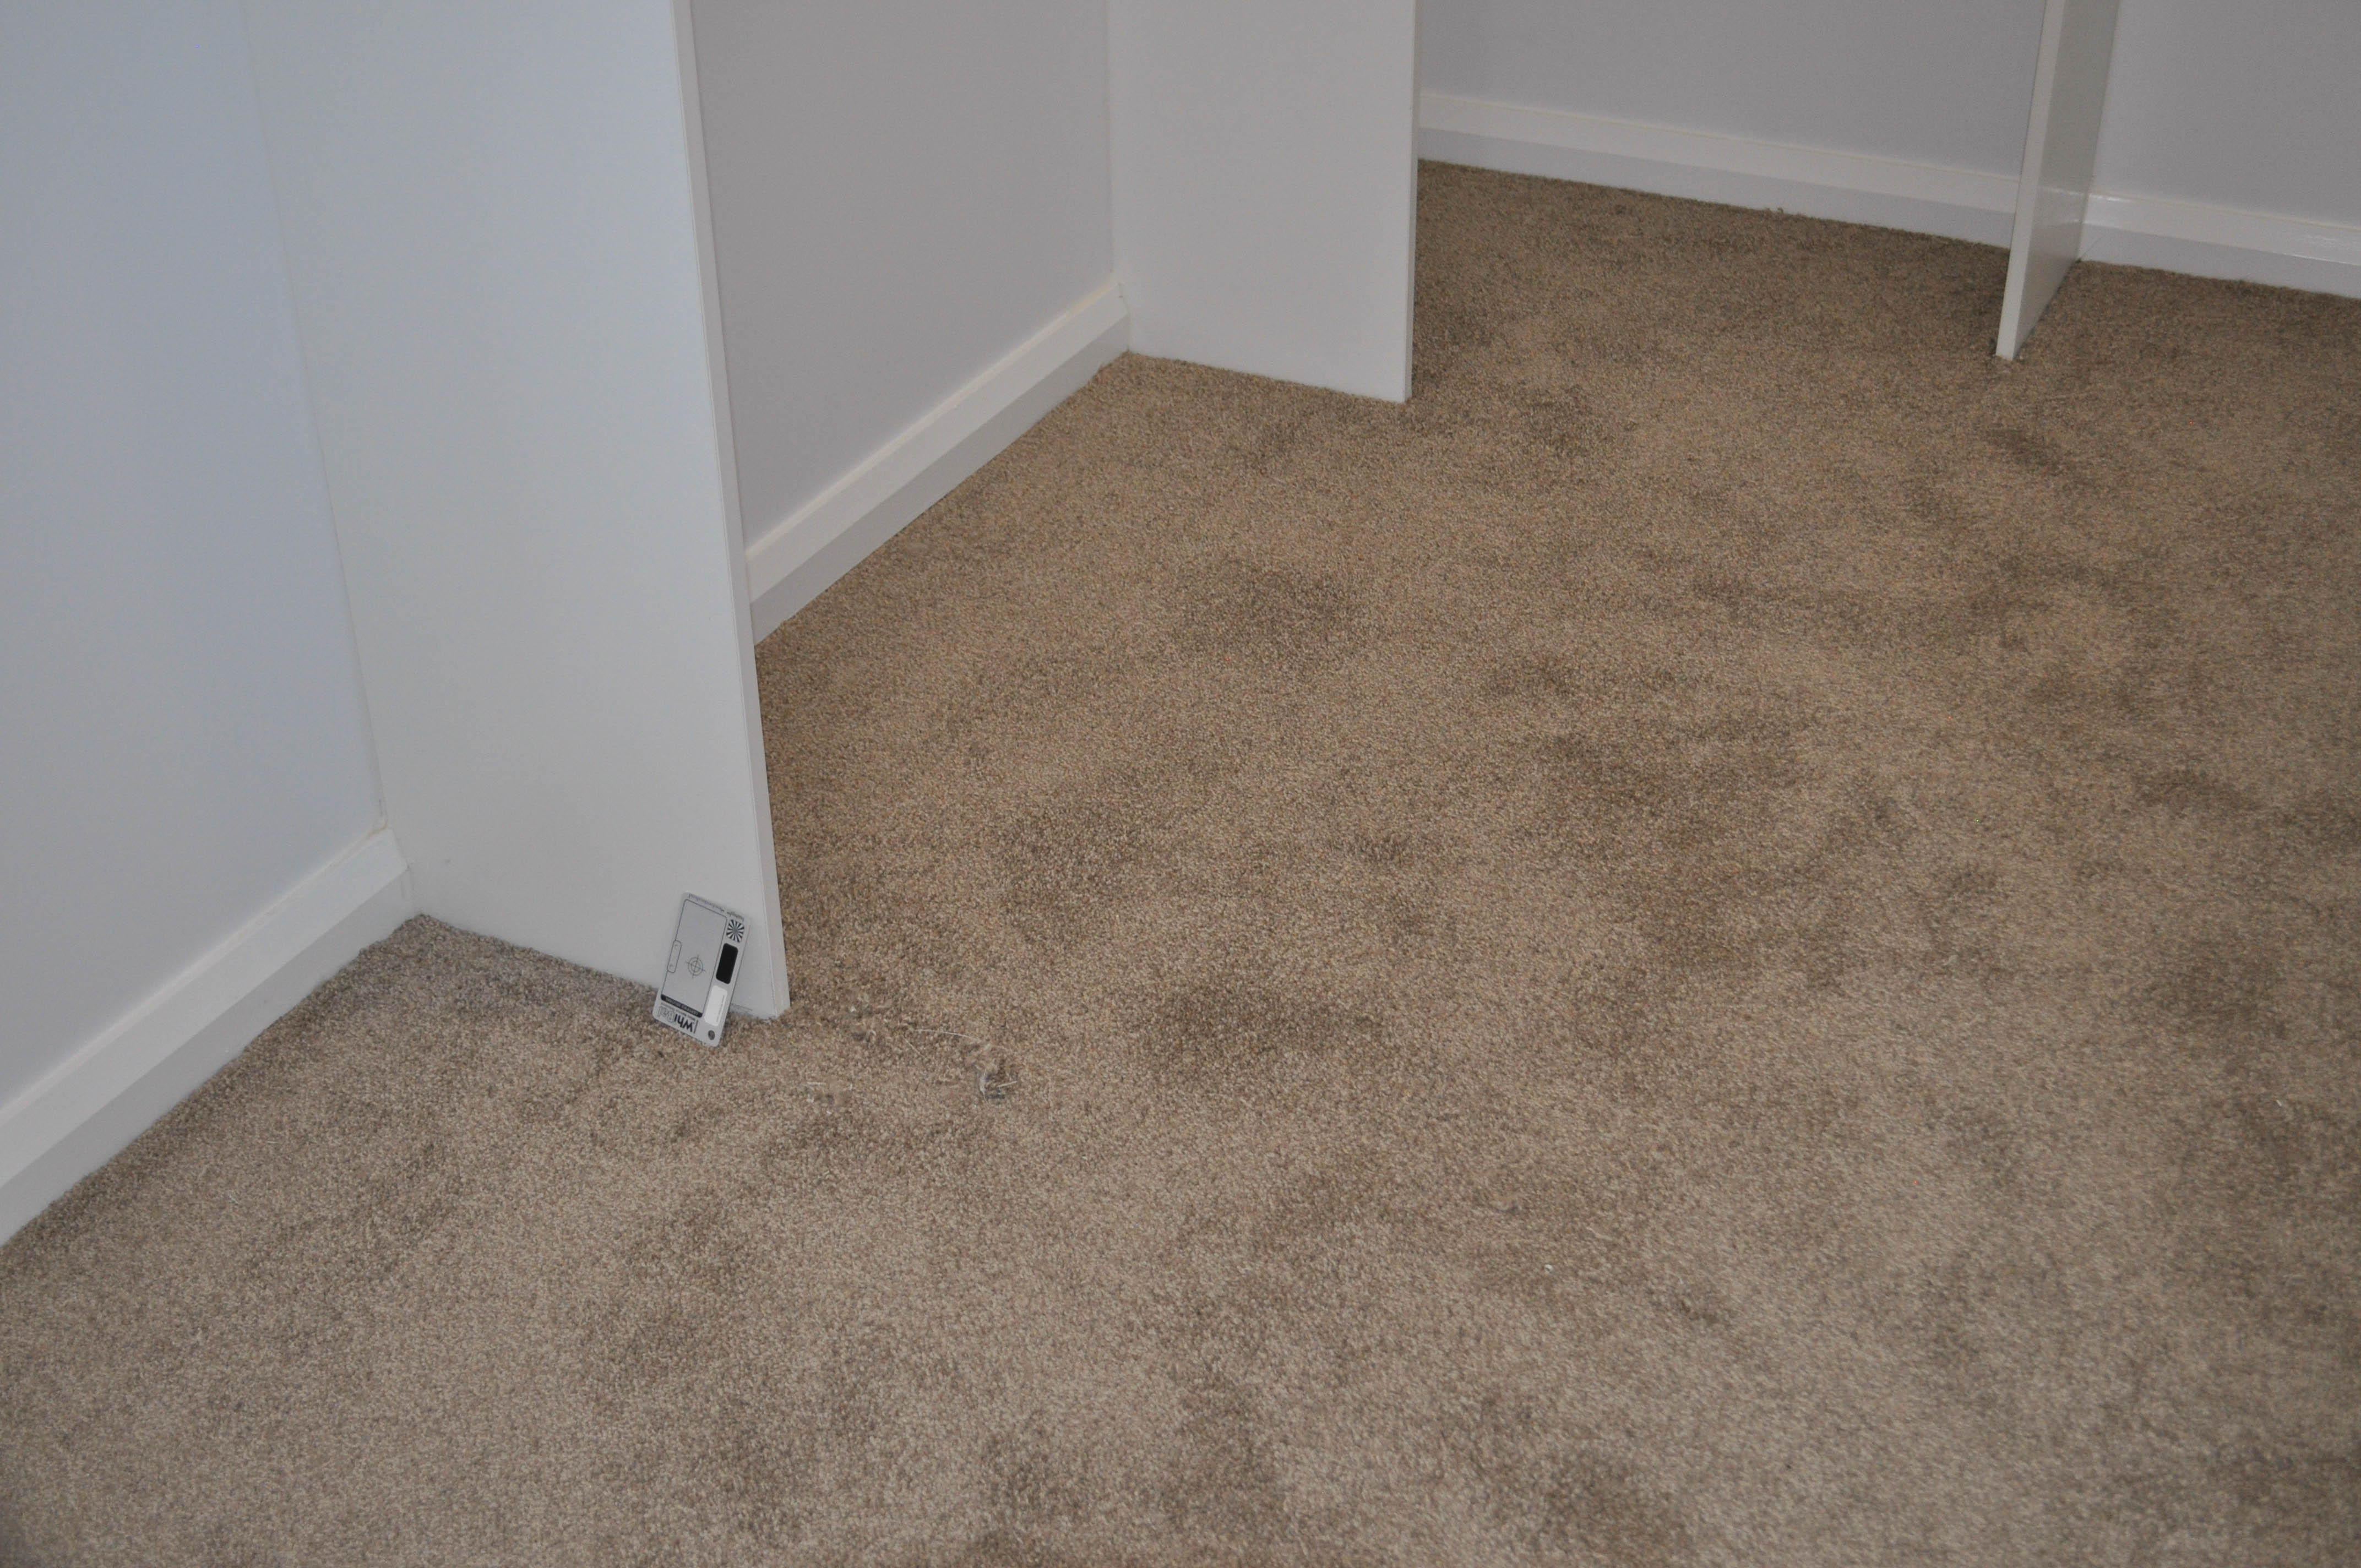 shows the carpet, of a light brown color, in a brand new home built by a volume builder for a client in the 